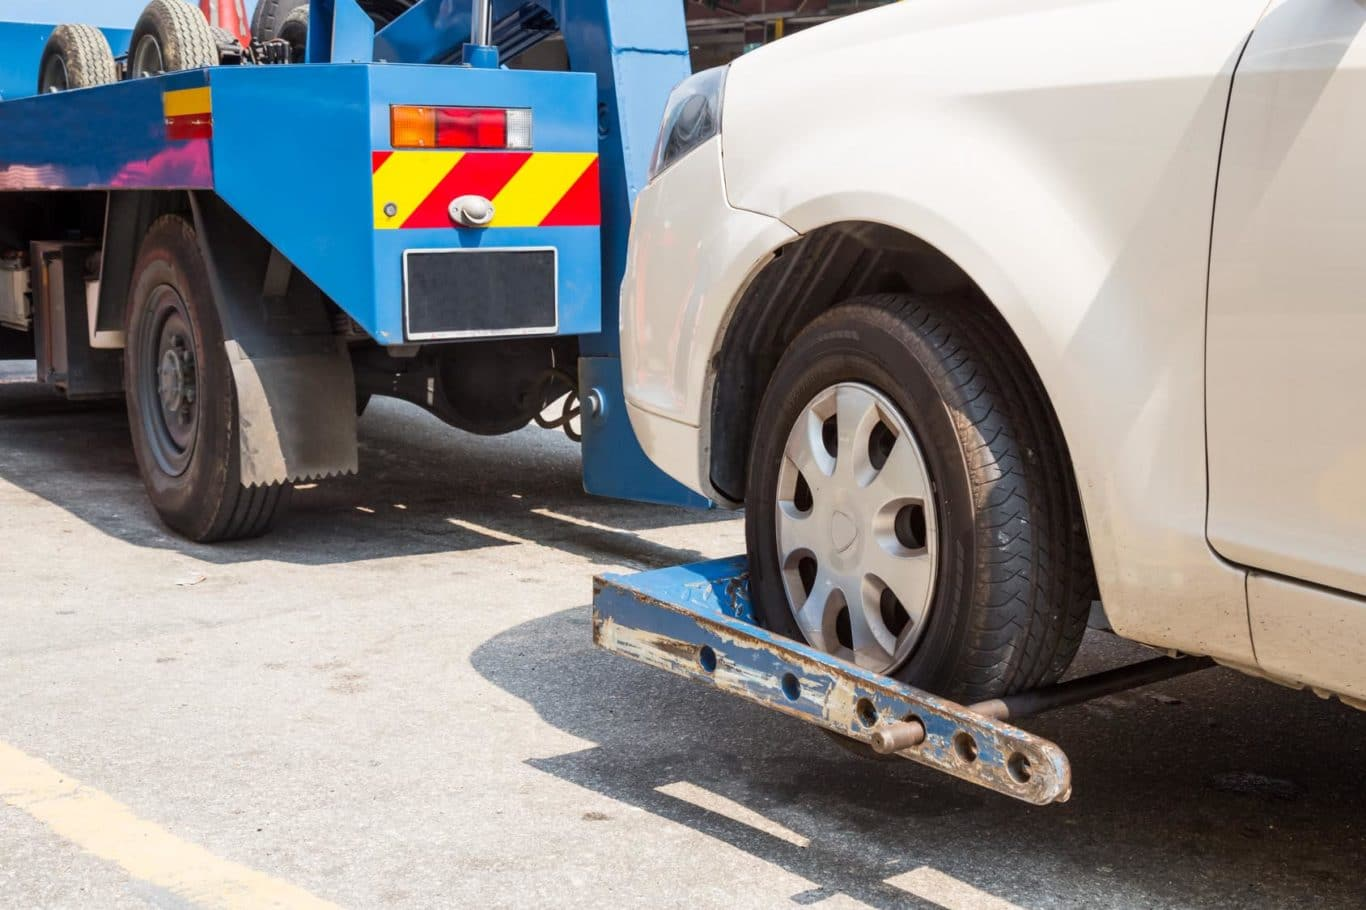 Beaumont expert Car Recovery services